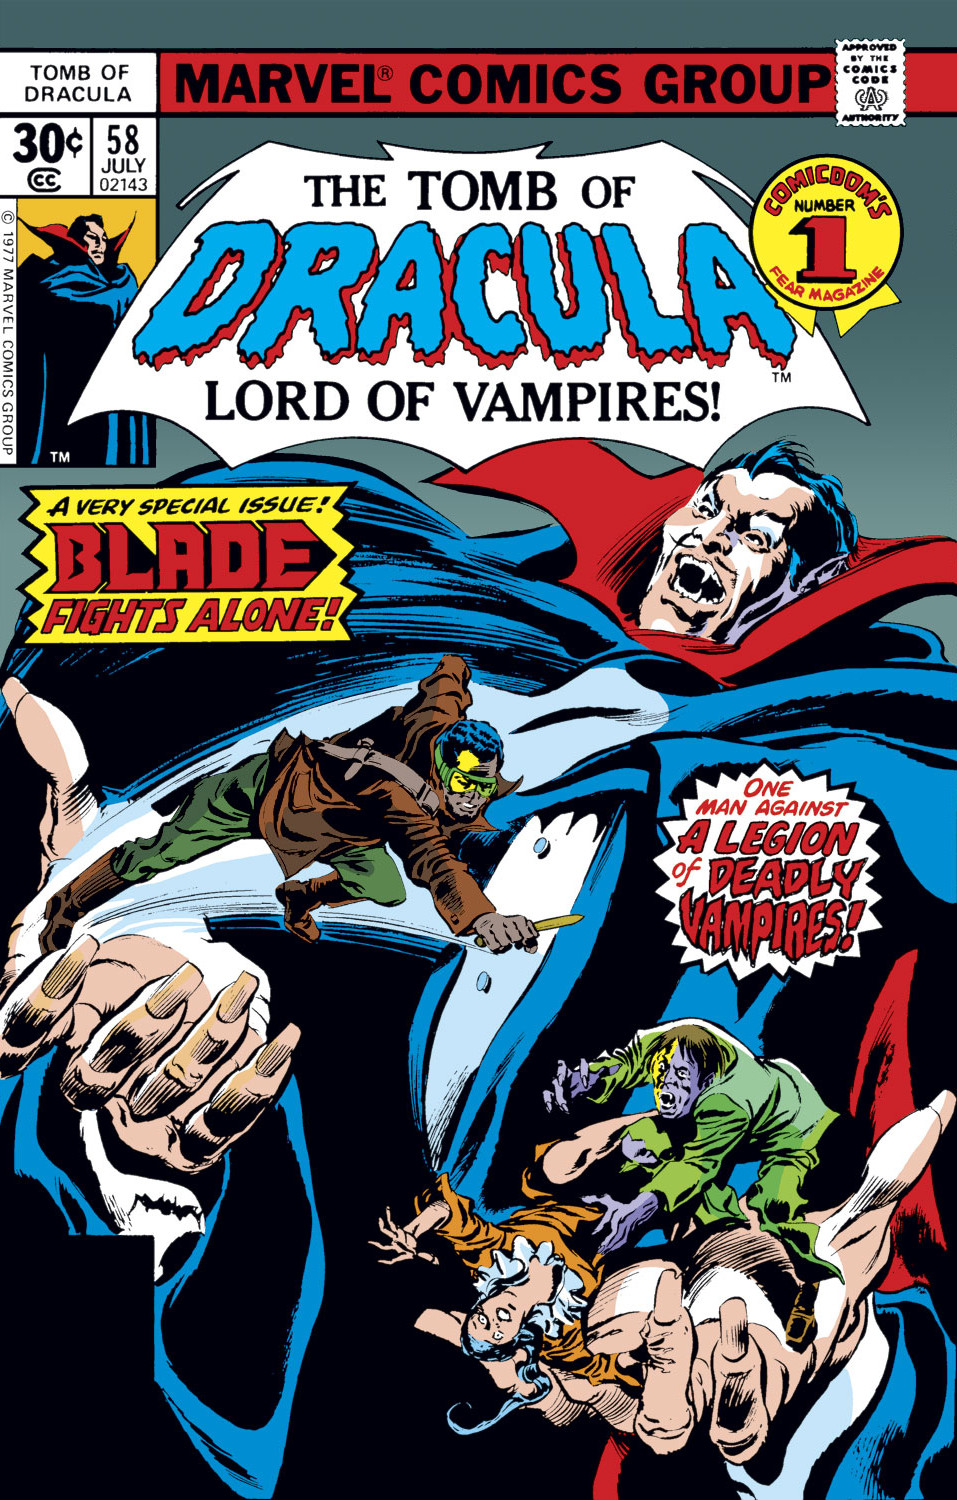 Tomb of Dracula Vol 1 58